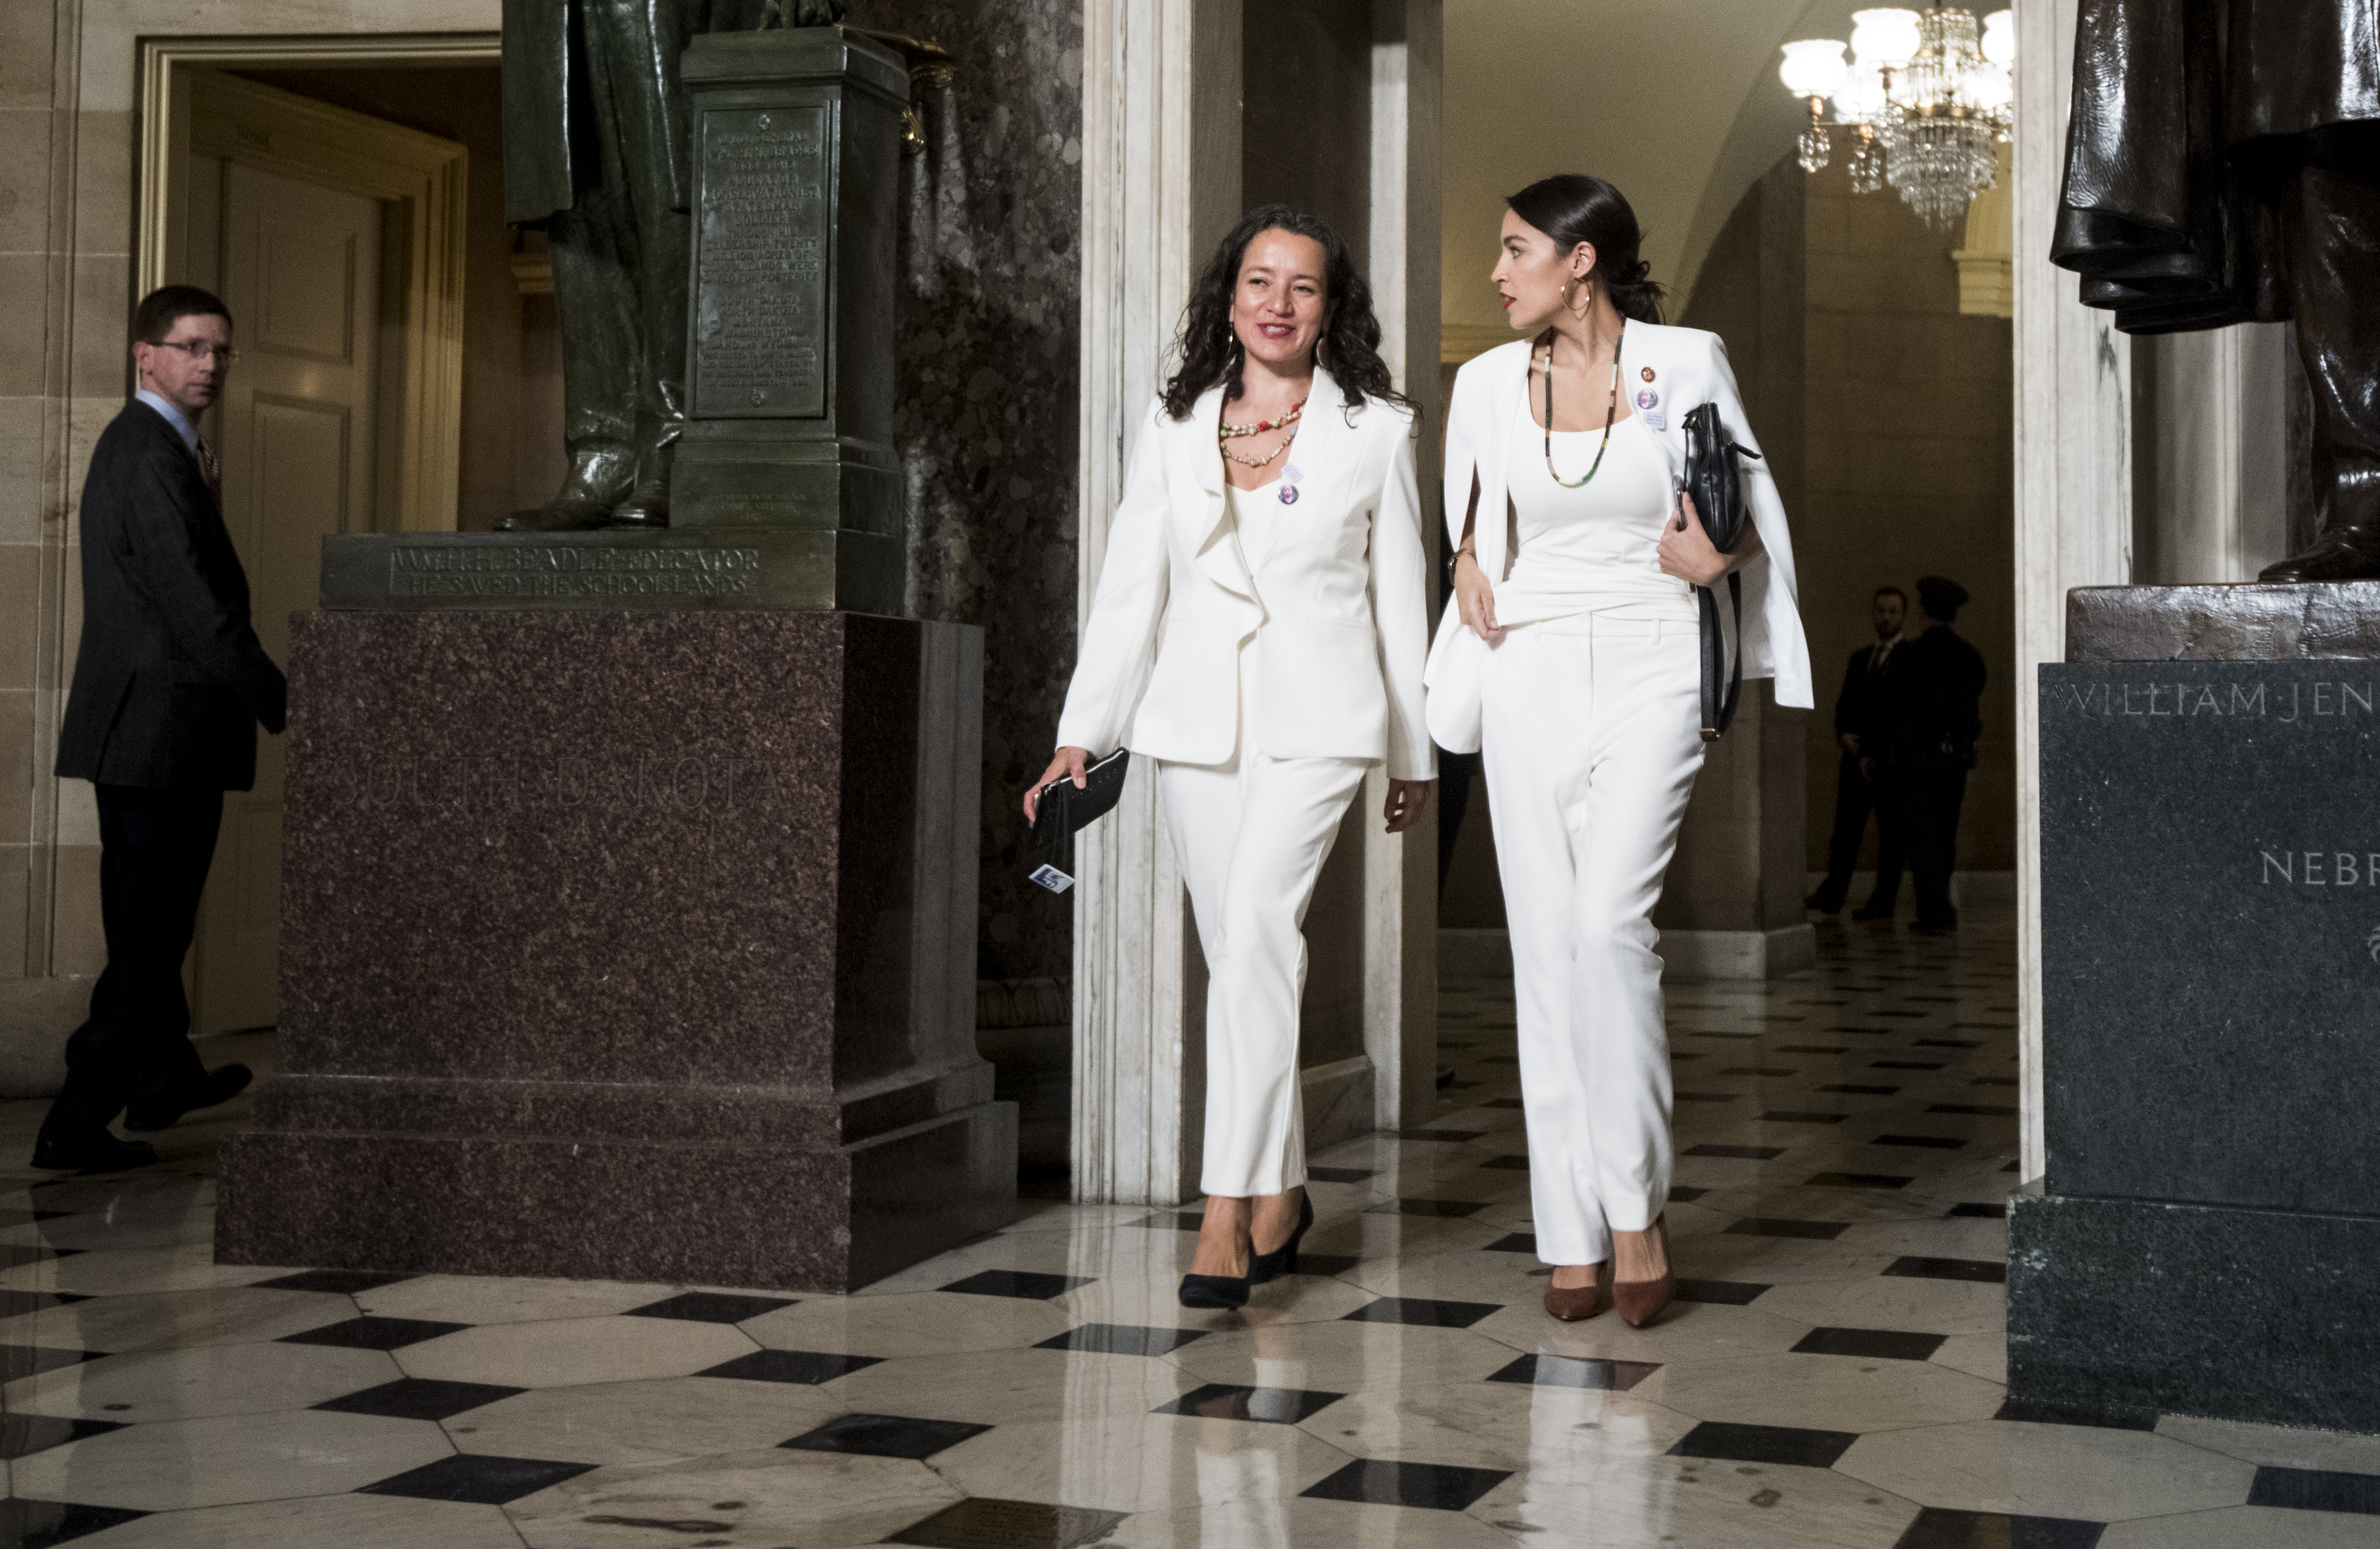 Rep. Alexandria Ocasio-Cortez, right, walks with her State of the Union guest Ana Maria Archila to the House chamber for President Donald Trump's State of the Union address to a joint session of Congress in the Capitol on Feb. 5, 2019.